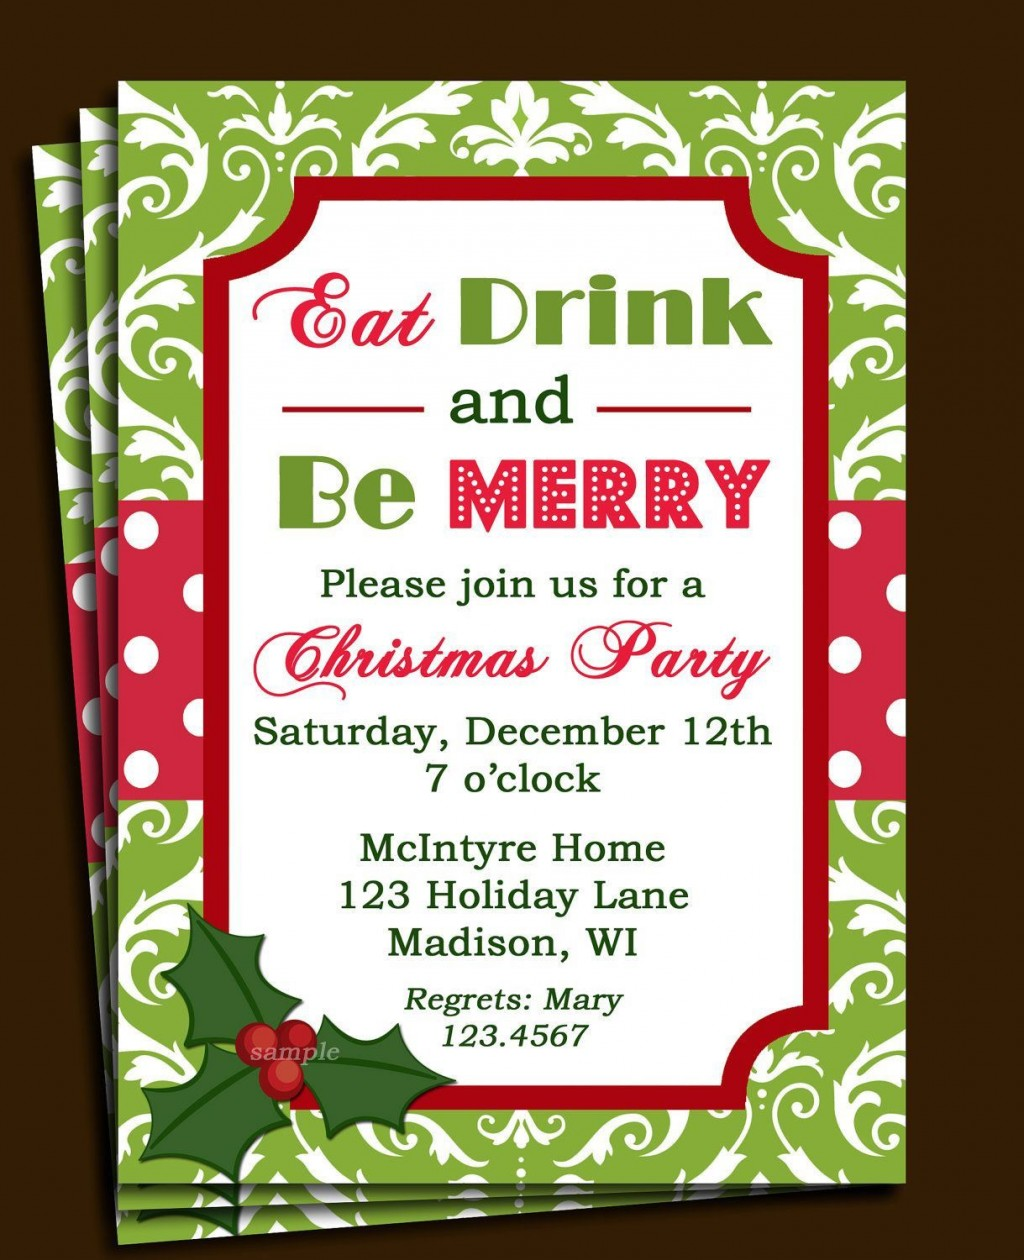 007 Breathtaking Free Holiday Party Invitation Template For Word Highest Clarity Large